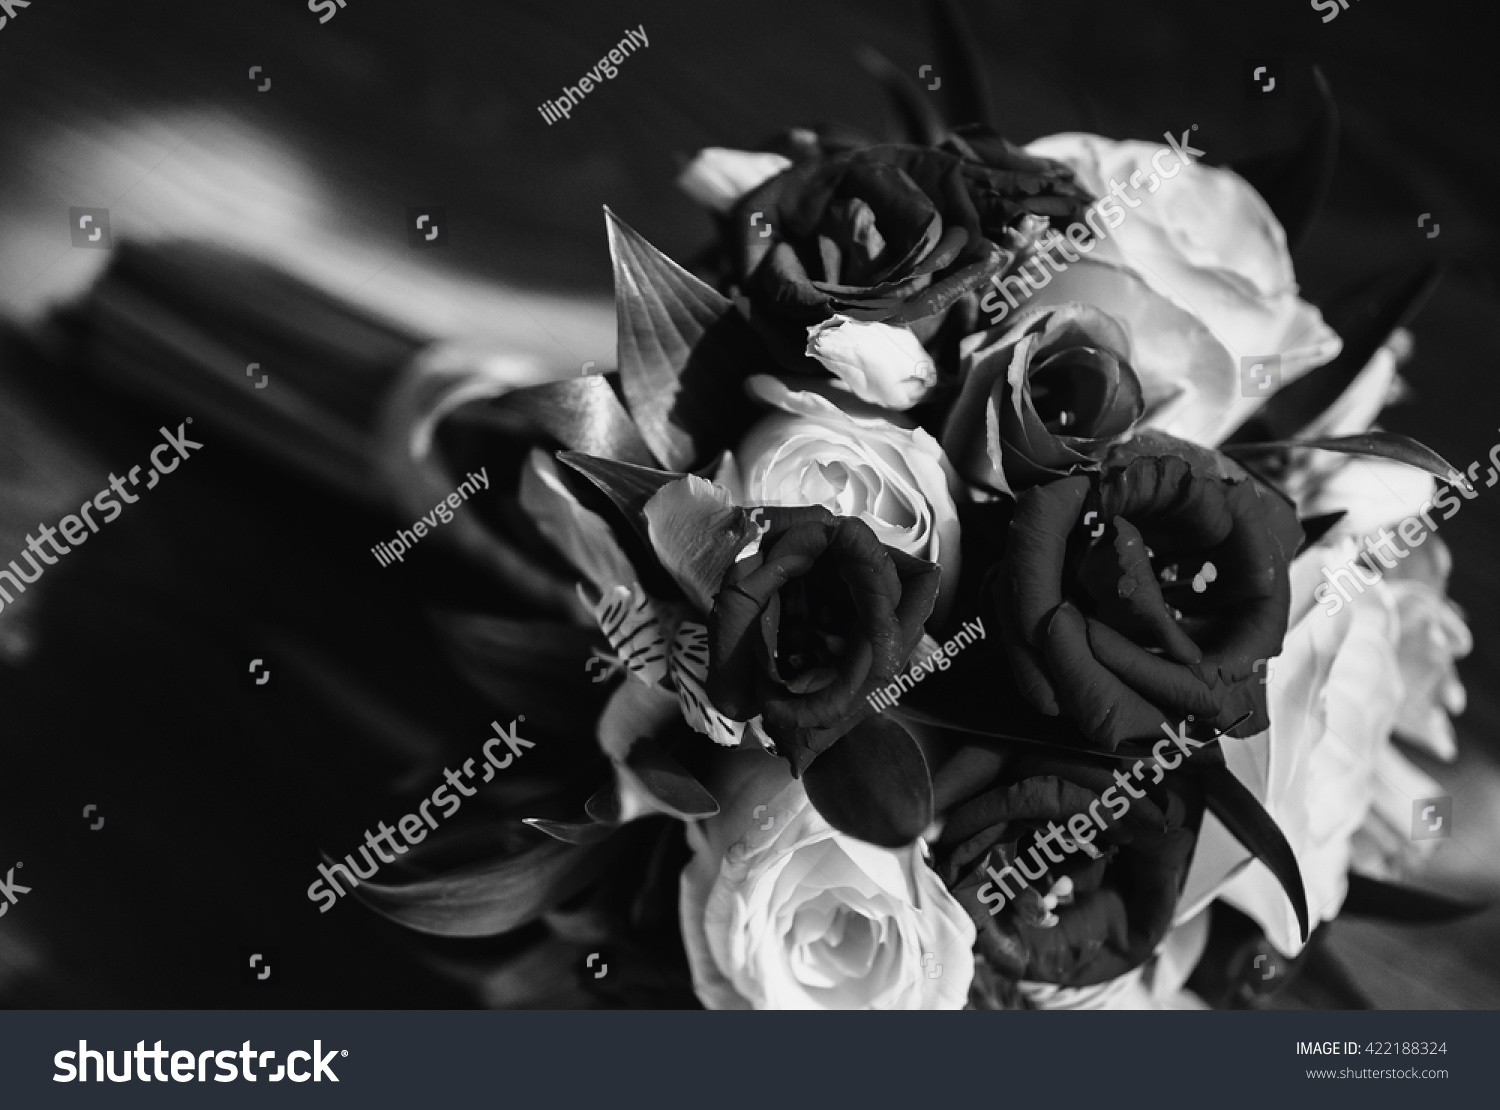 Black White Art Photography Monochrome Grayscale Stock Photo